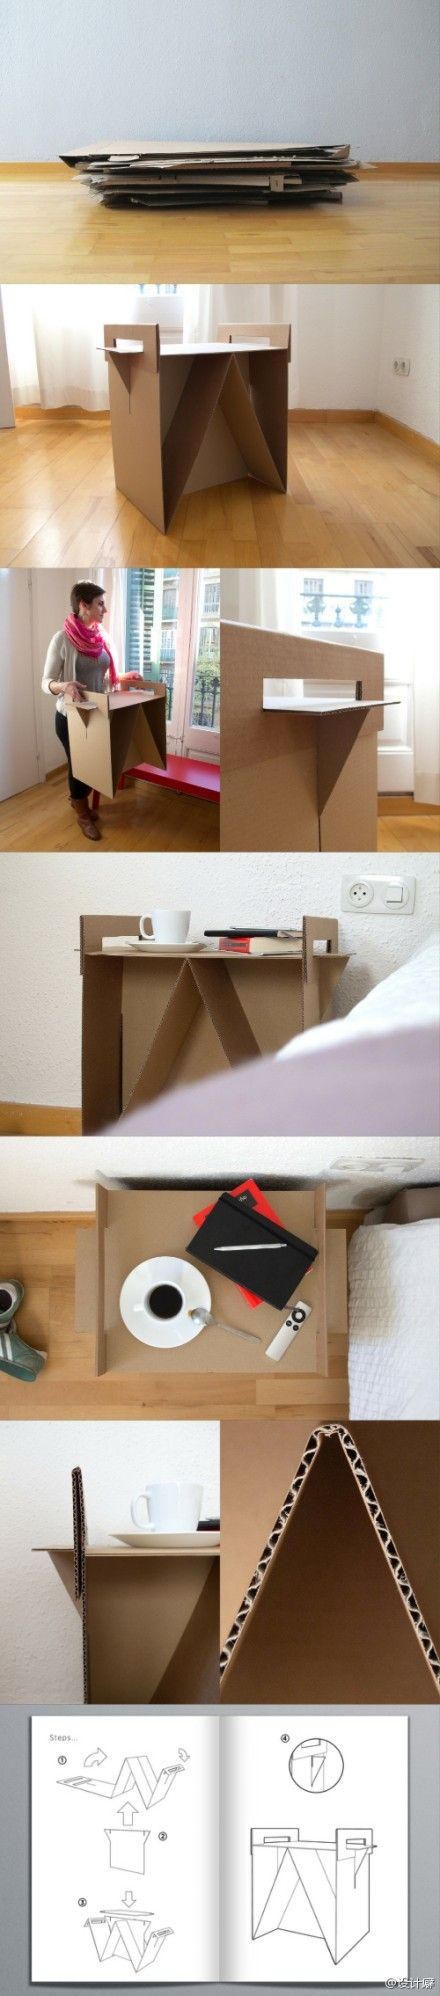 115 Best Images About Cardboard Recycling Ideas On